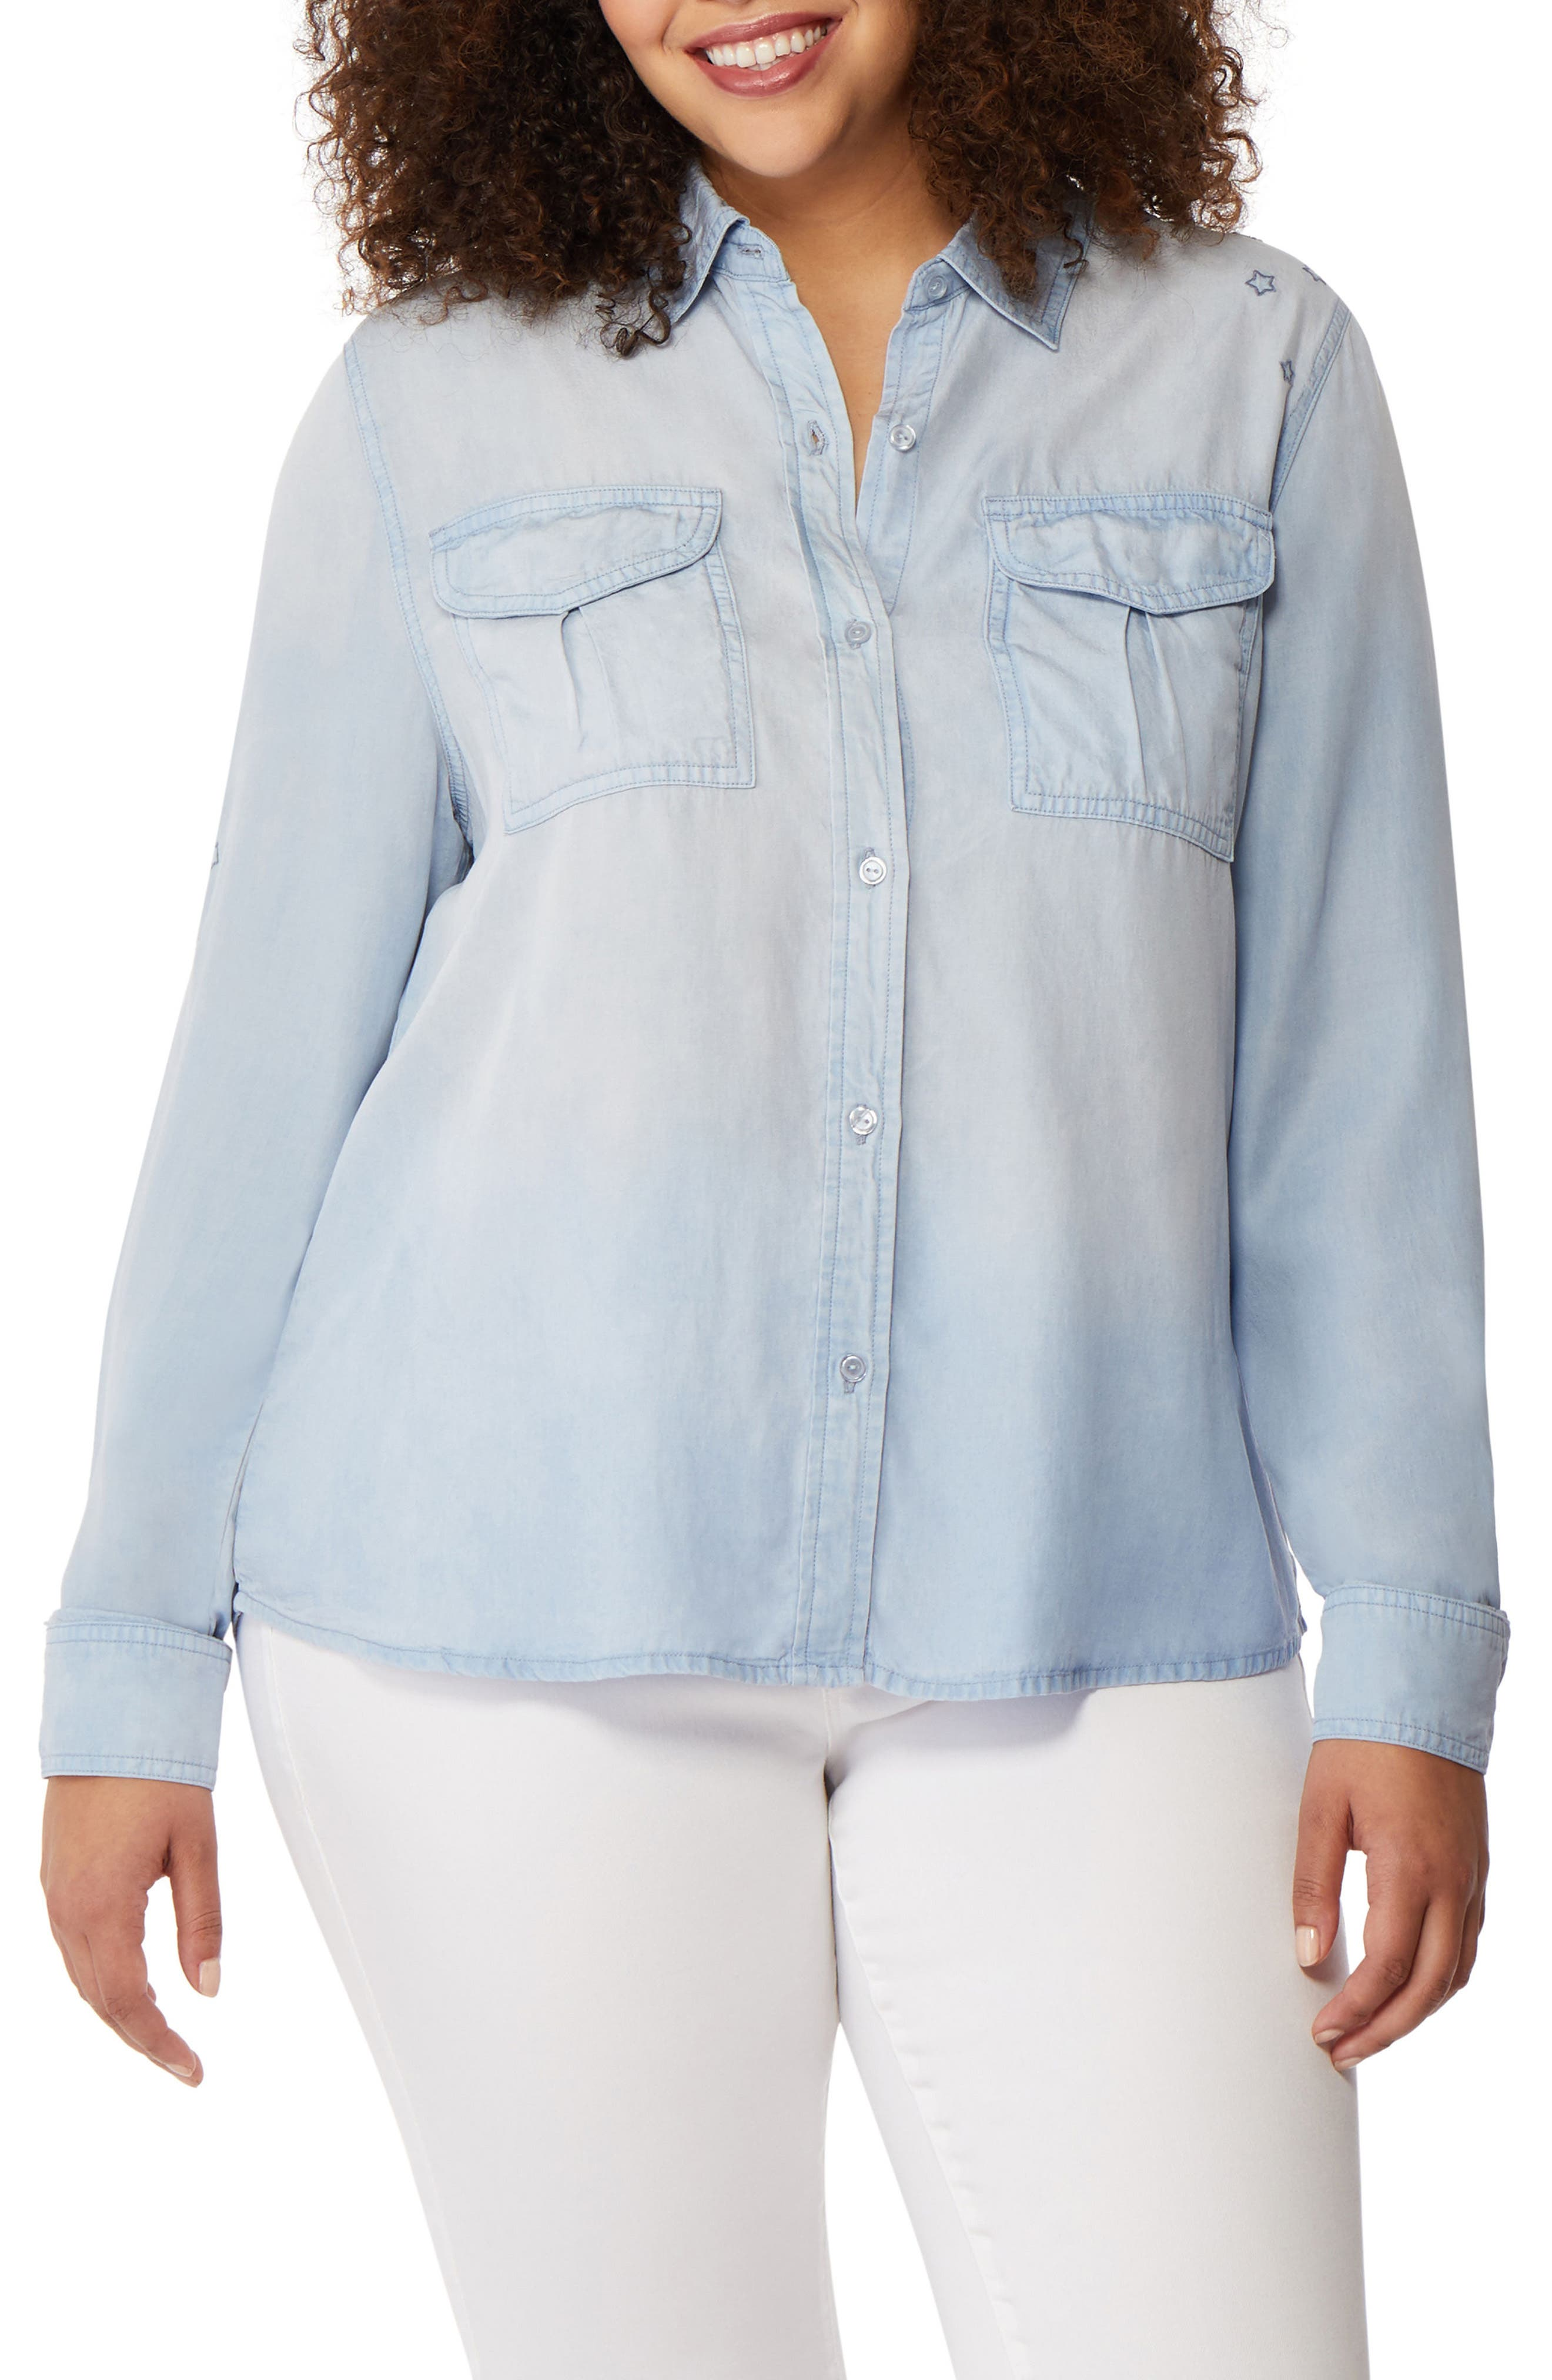 Rebel Wilson x Angels Embroidered Chambray Utility Shirt (Plus Size)